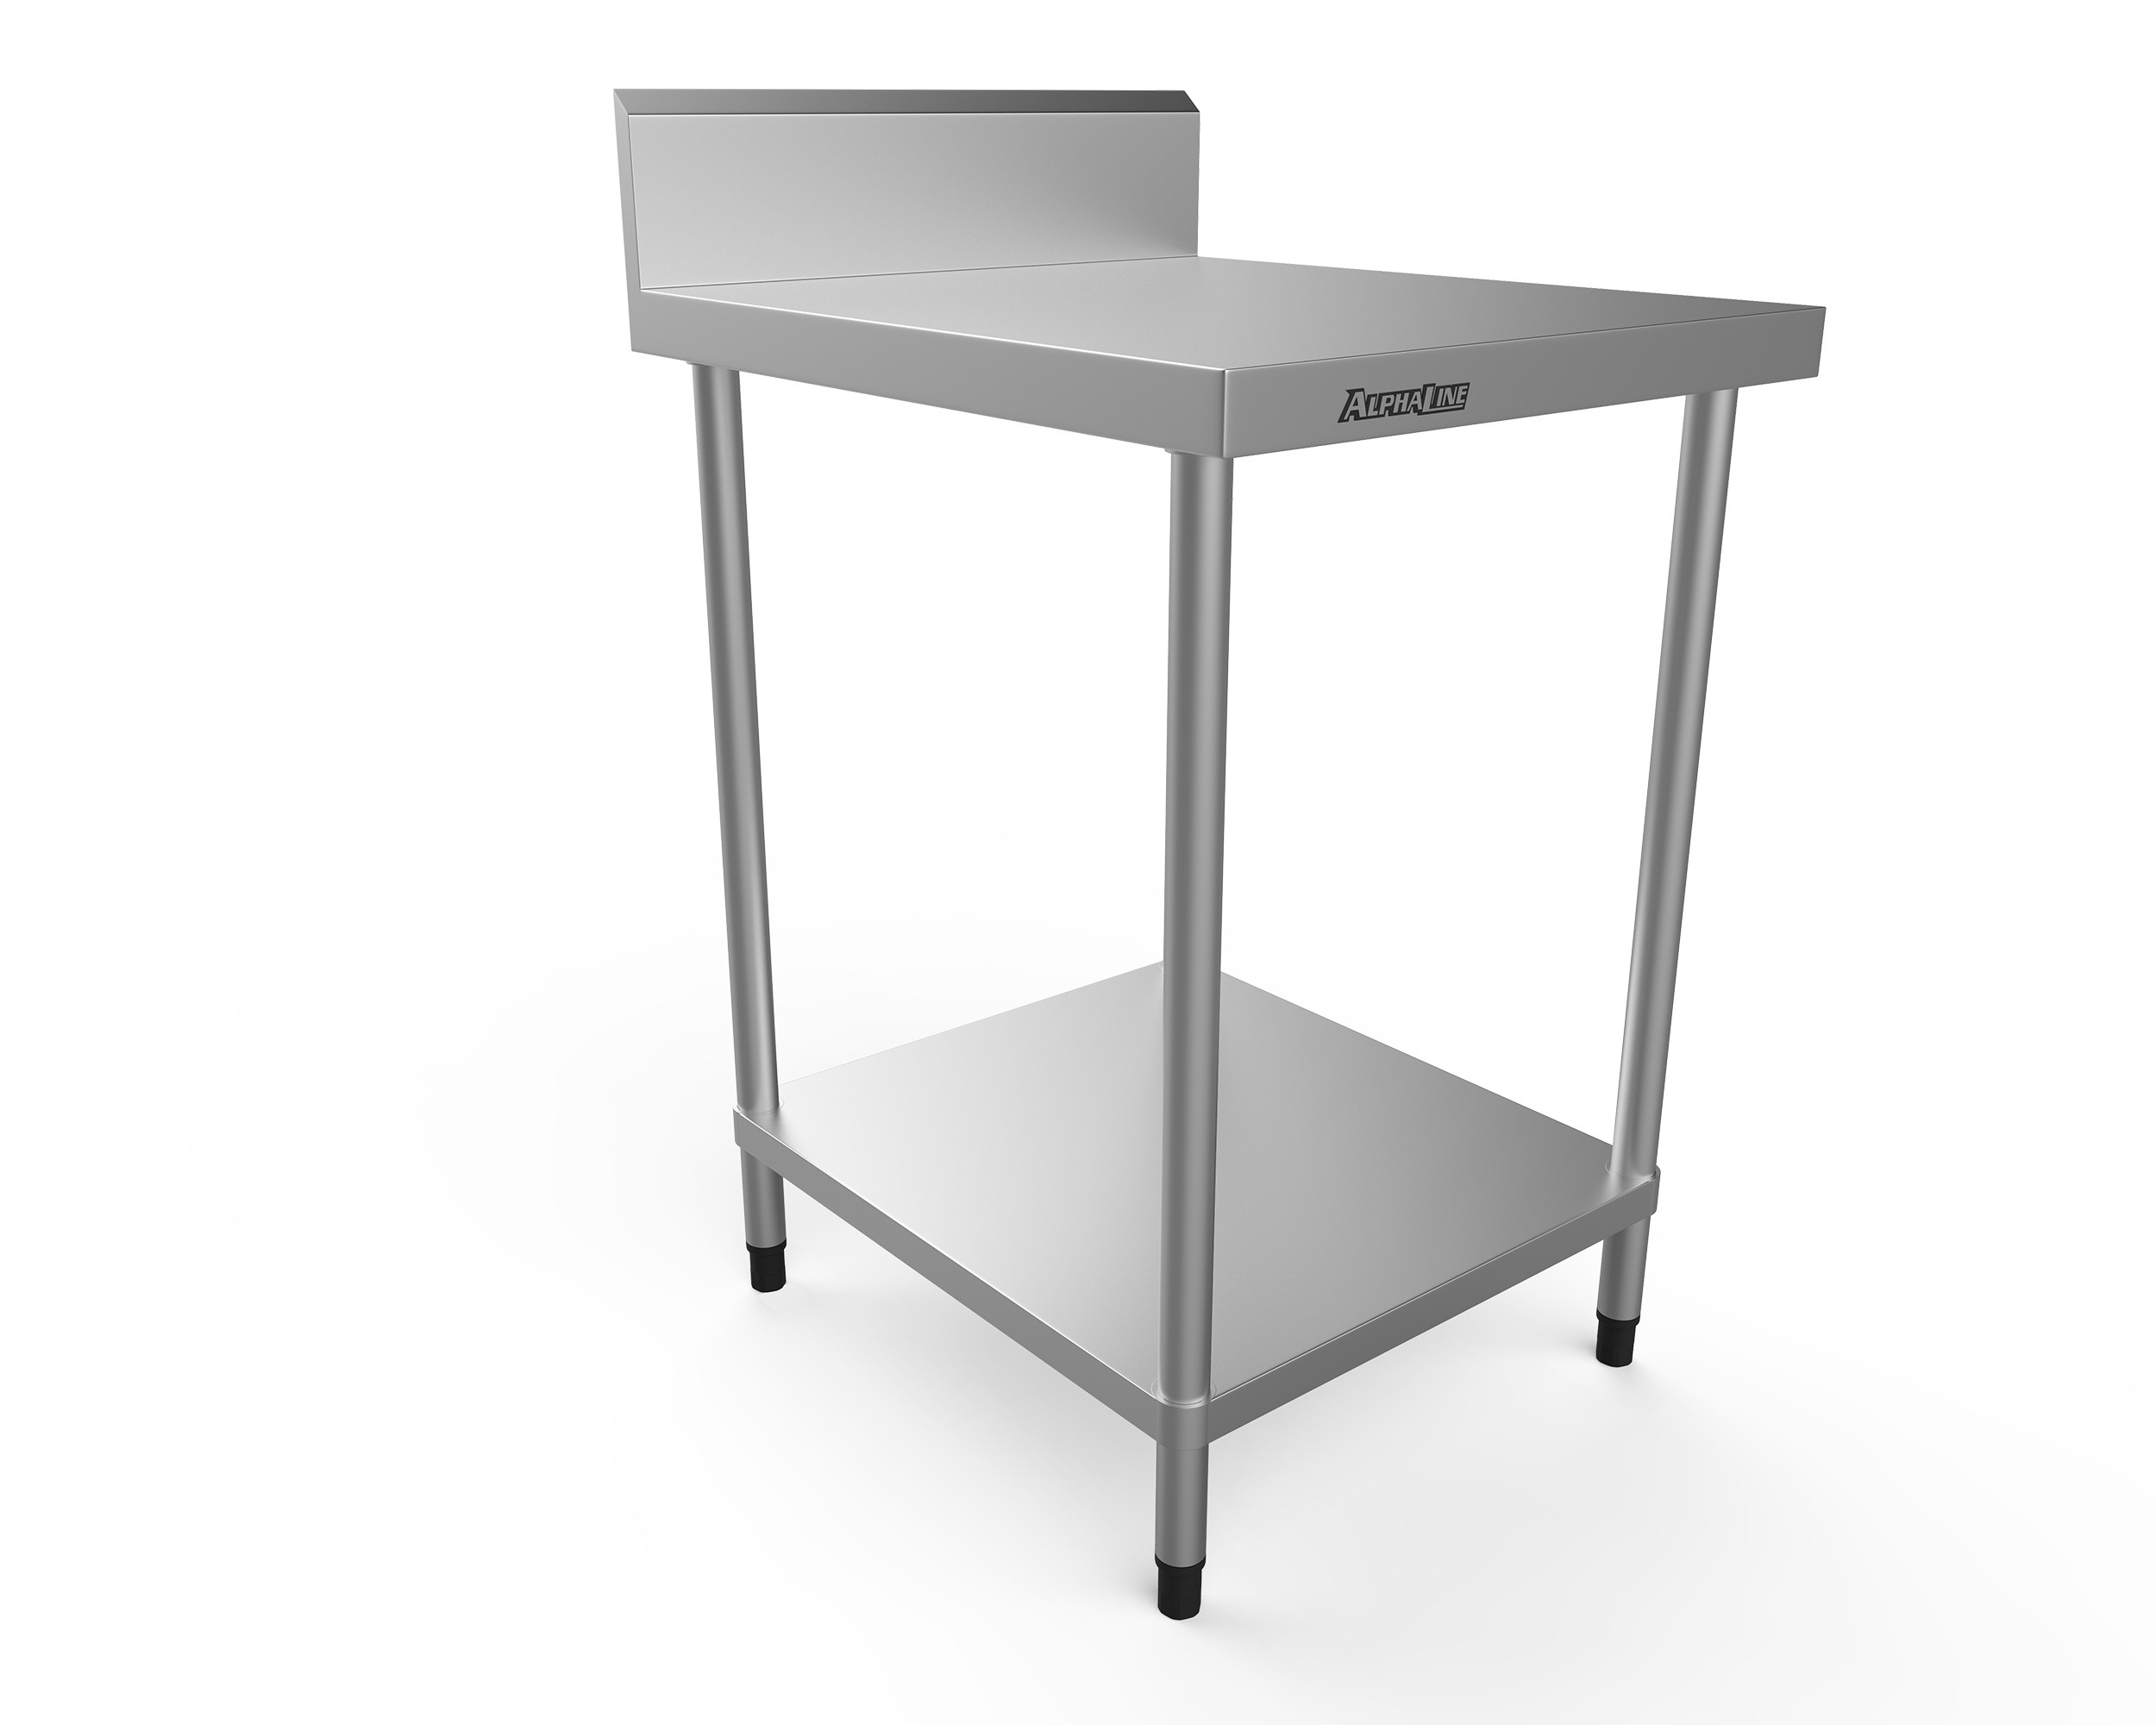 Stainless Steel Bench with Splash Back - 600 x 700 340 Grade - ALP-SB-7060